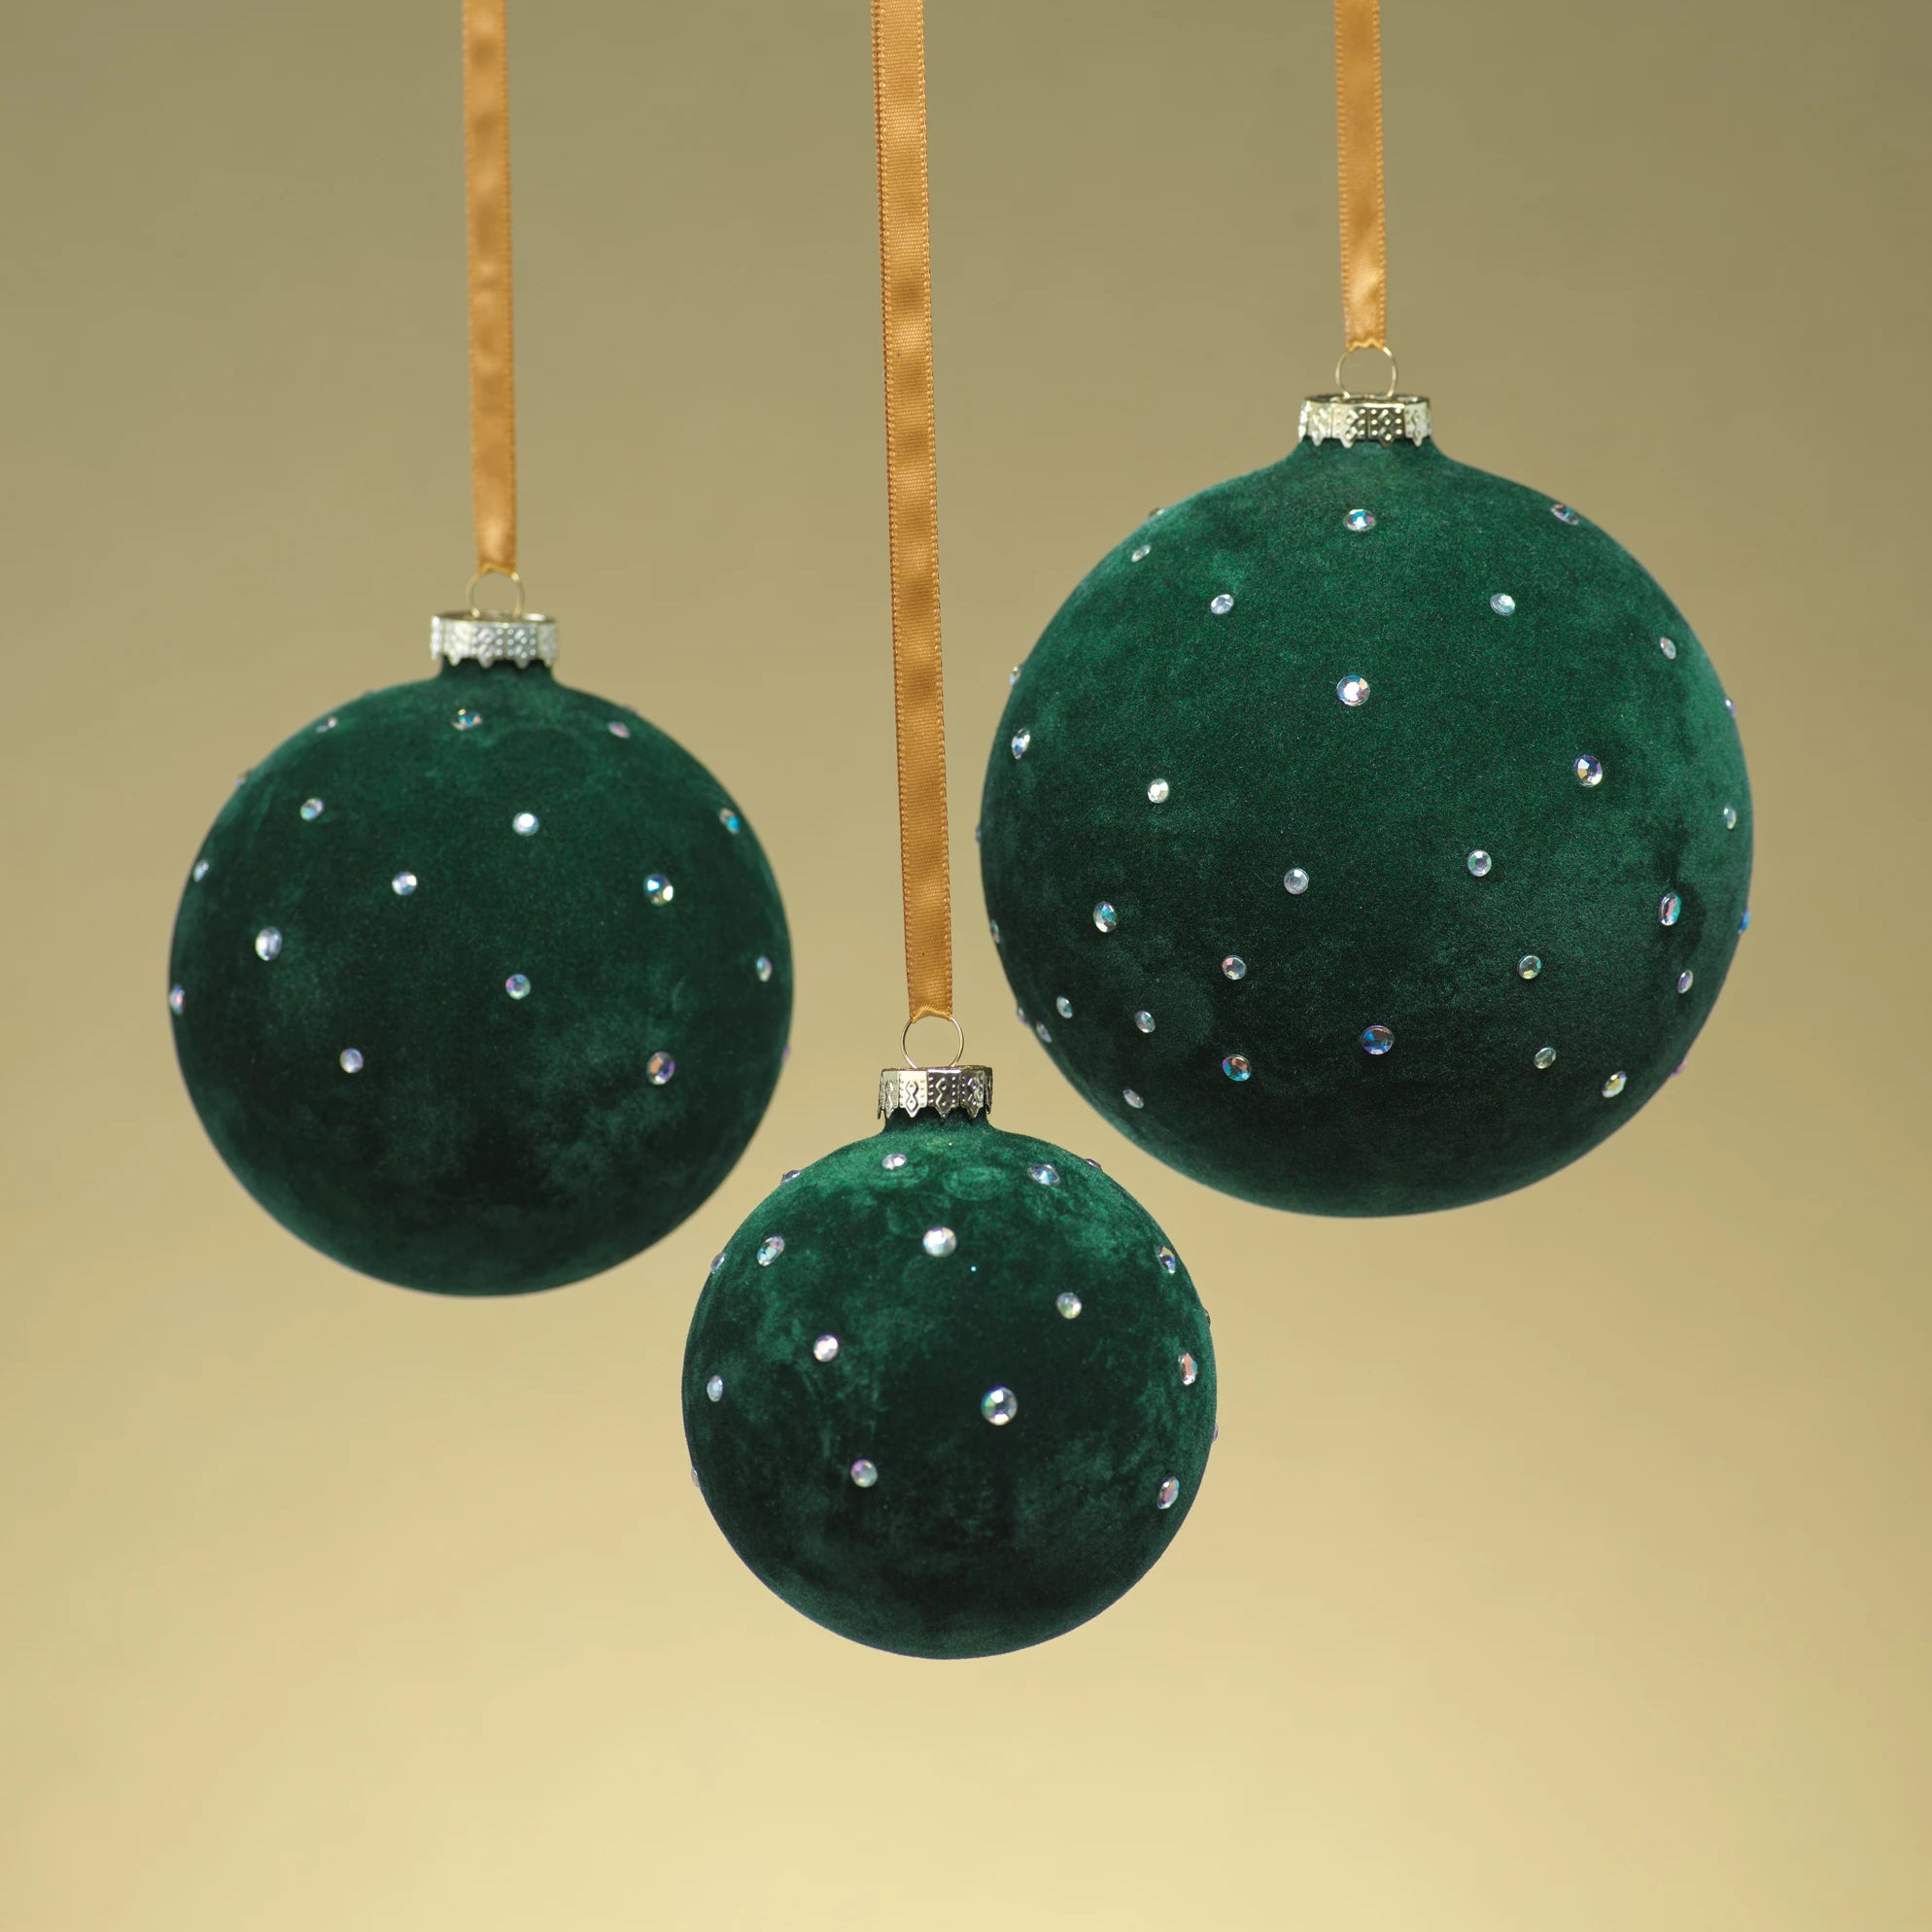 Flocked Ornament w/ Clear Studs